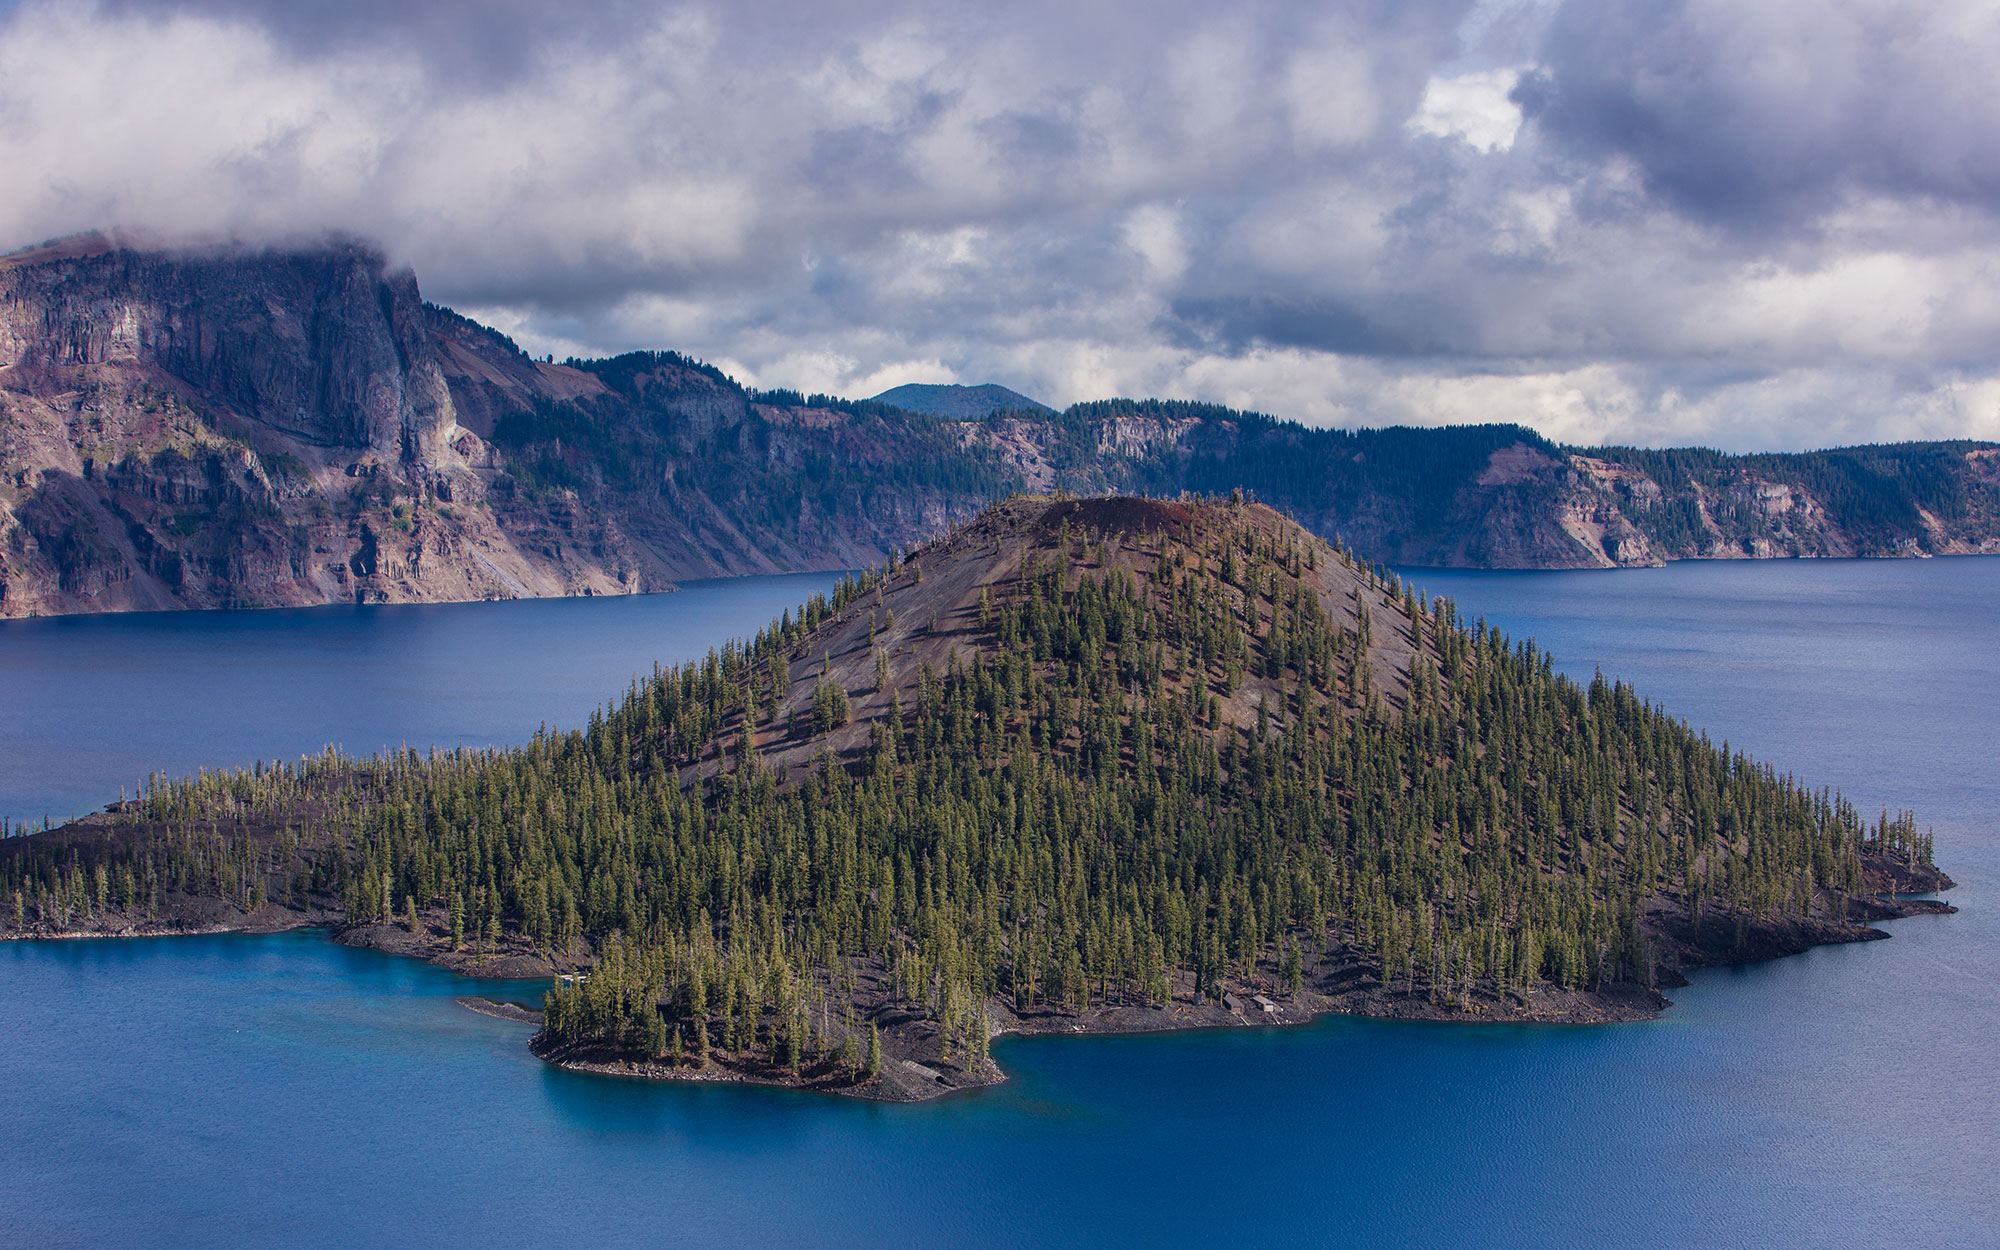 Near Death by Crater Lake